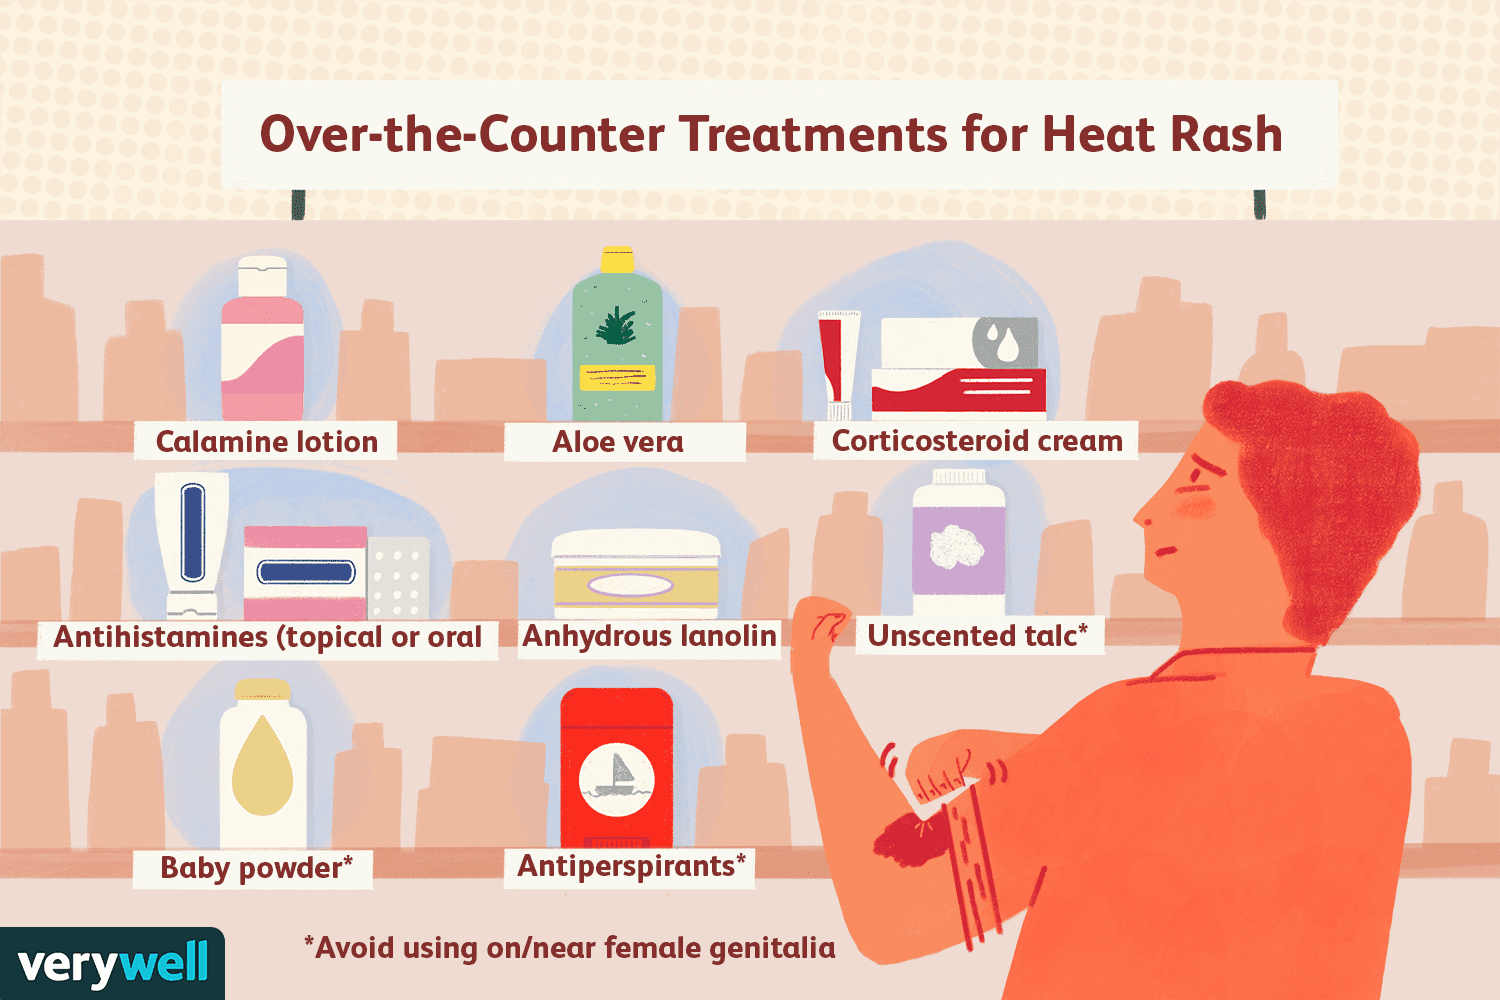 Over-the-Counter Treatments for Heat Rash